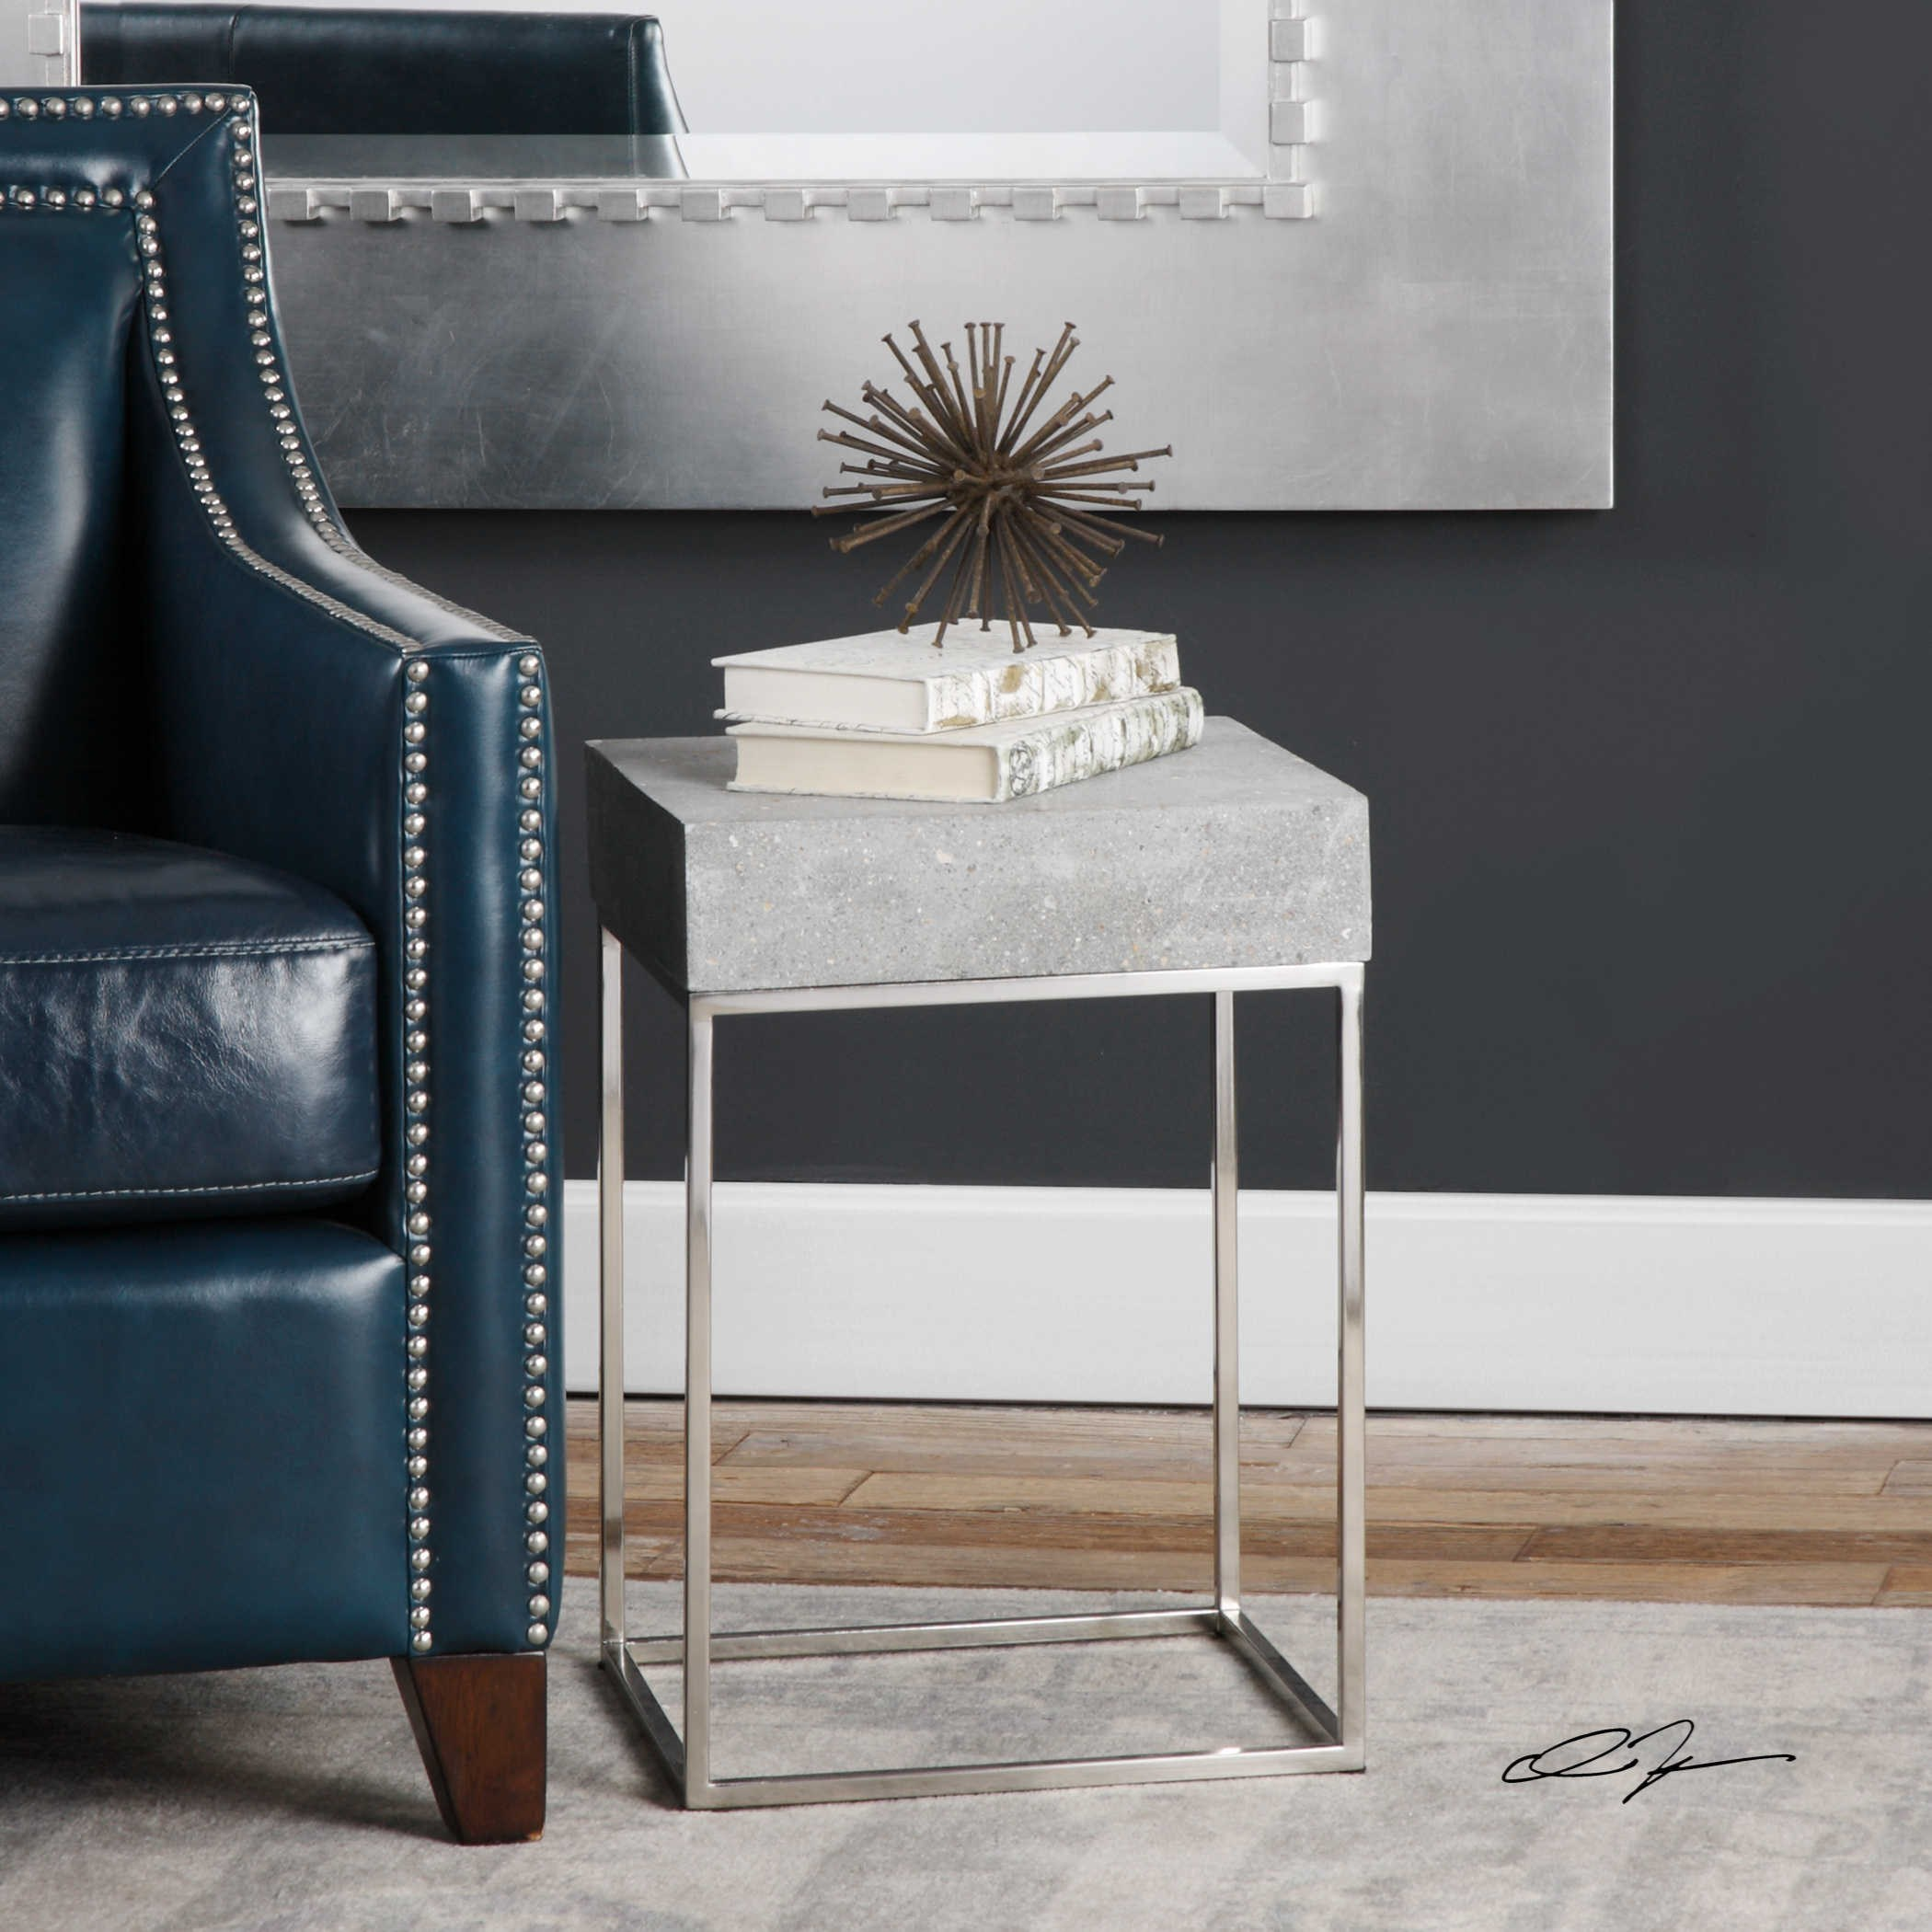 Medium image of uttermost accent furniture jude concrete accent table